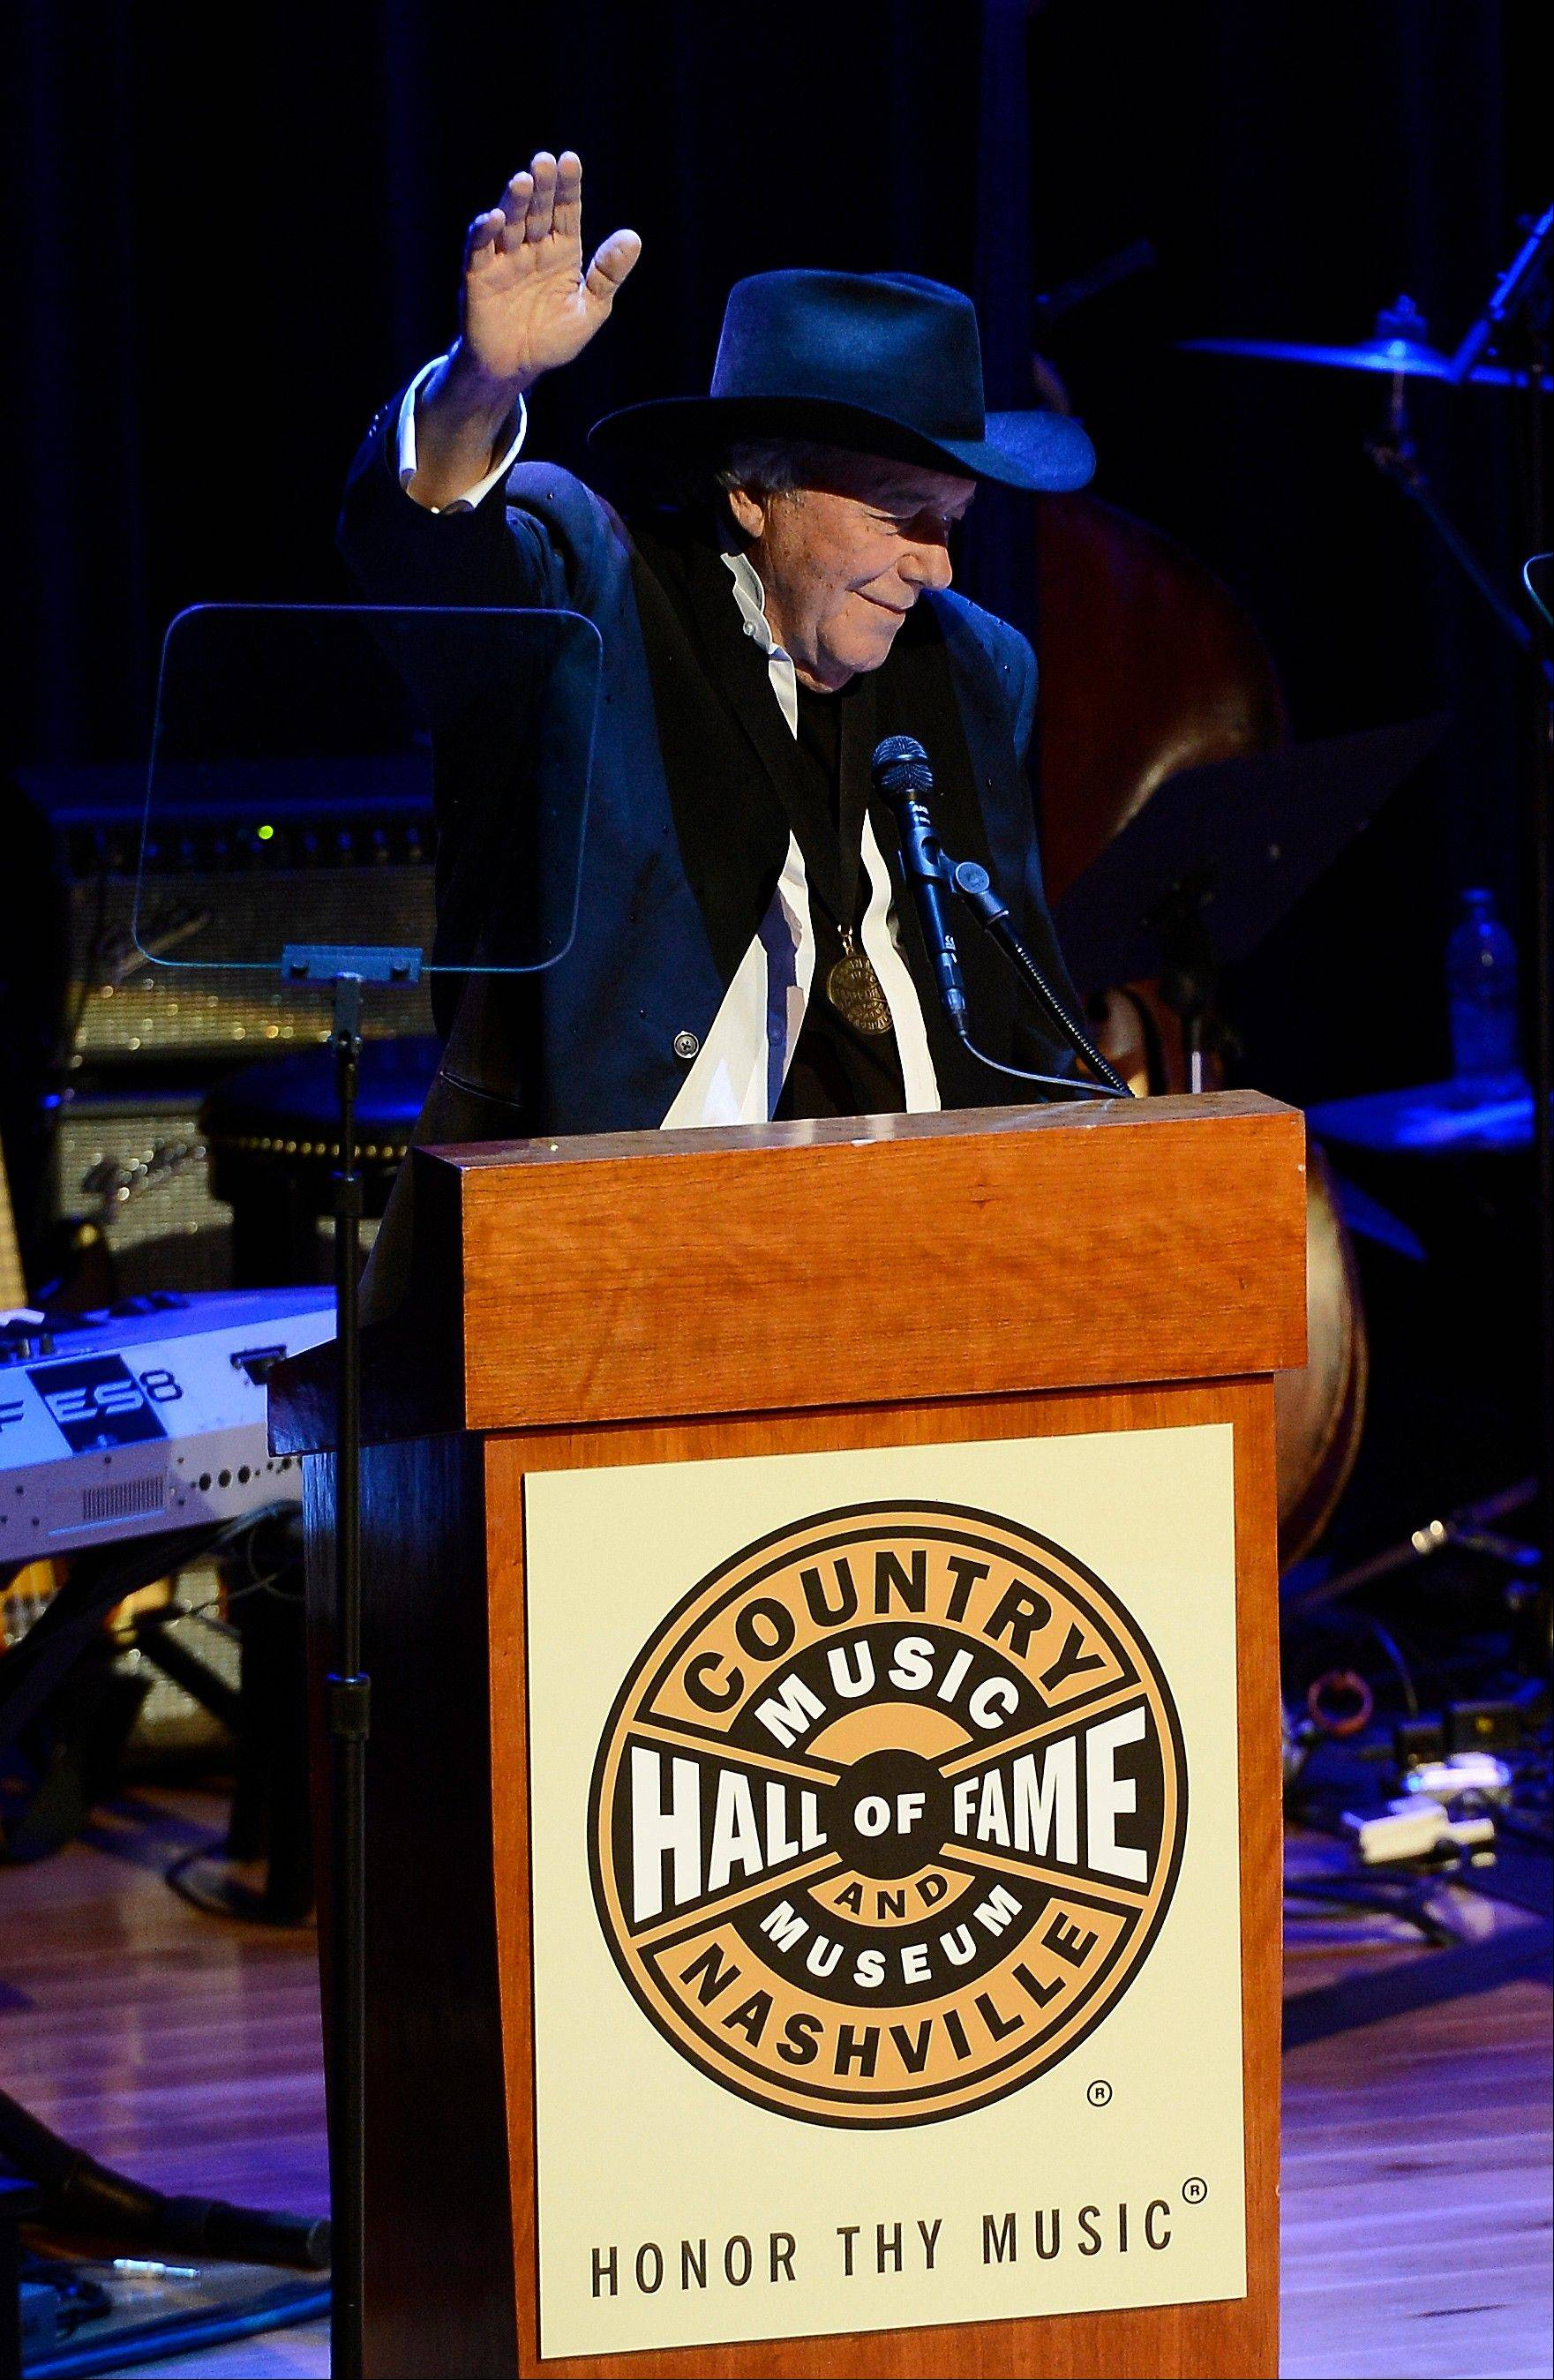 Country music star Bobby Bare thanks those gathered after he was presented with his County Music Hall of Fame medallion and plaque at the ceremony for the 2013 inductions into the Country Music Hall of Fame on Sunday in Nashville, Tenn.